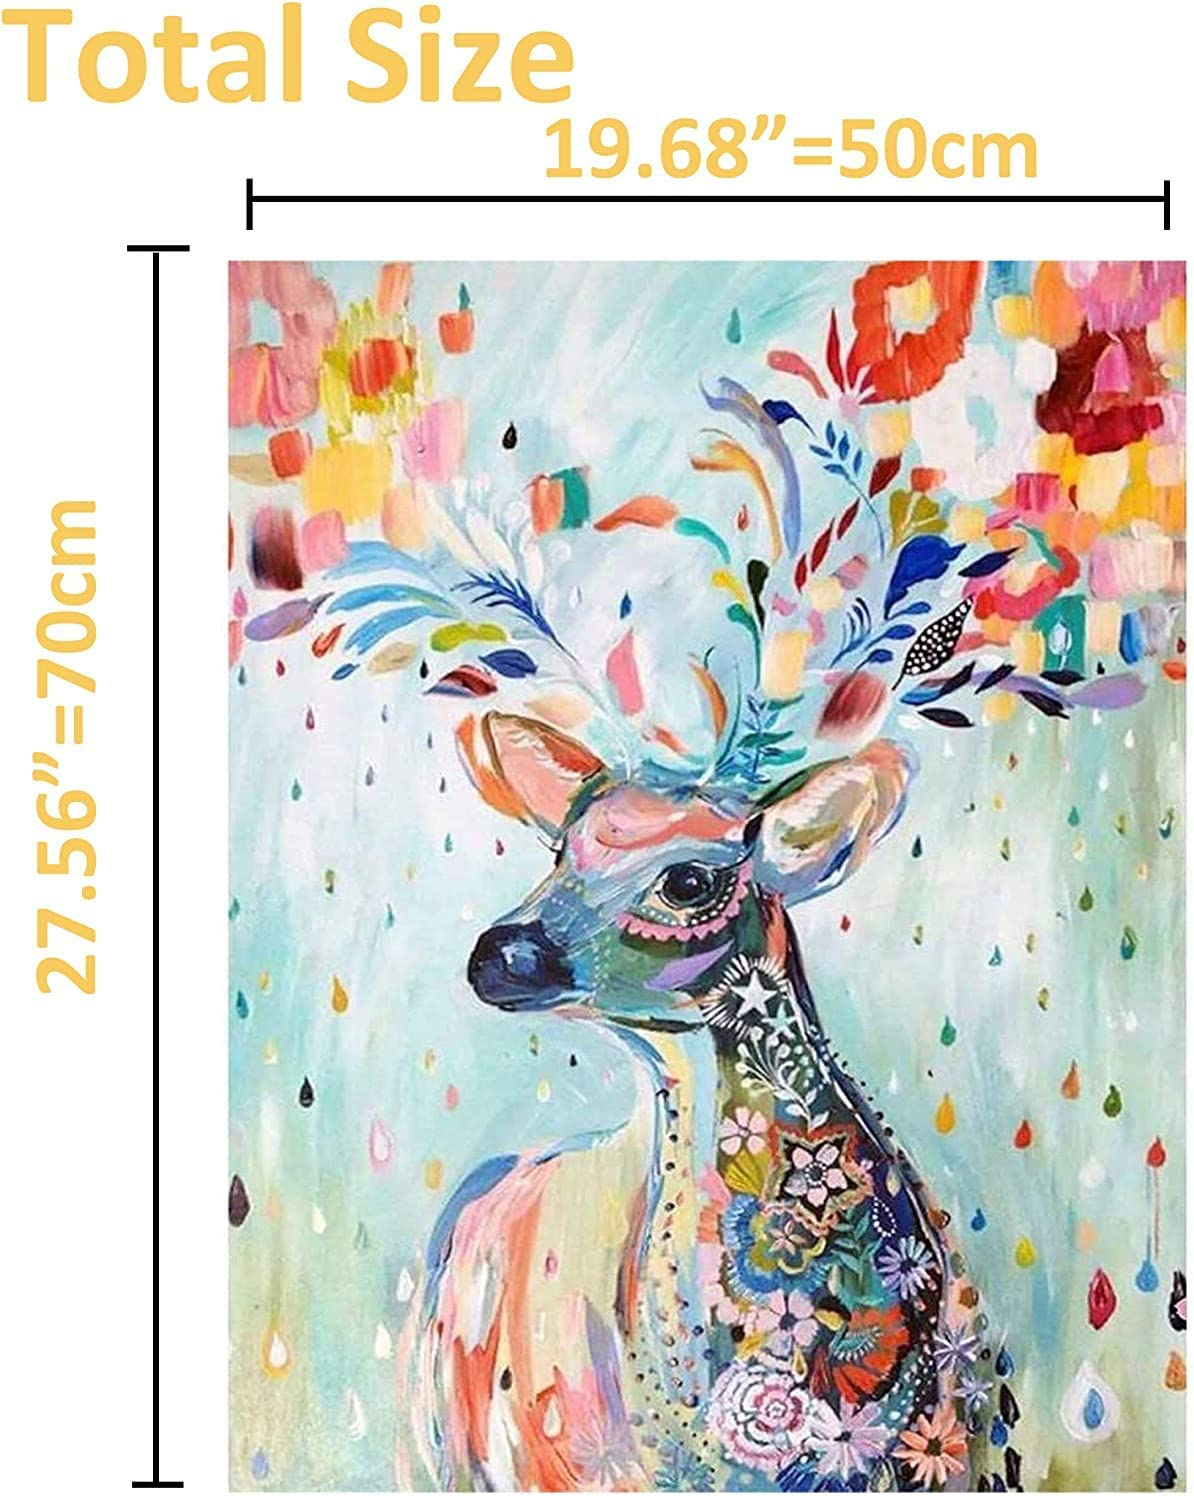 Colorful Deer Jigsaw Puzzles for Adults Children 1000 Pieces Large Size Classic Unique Home Decorations and Gifts